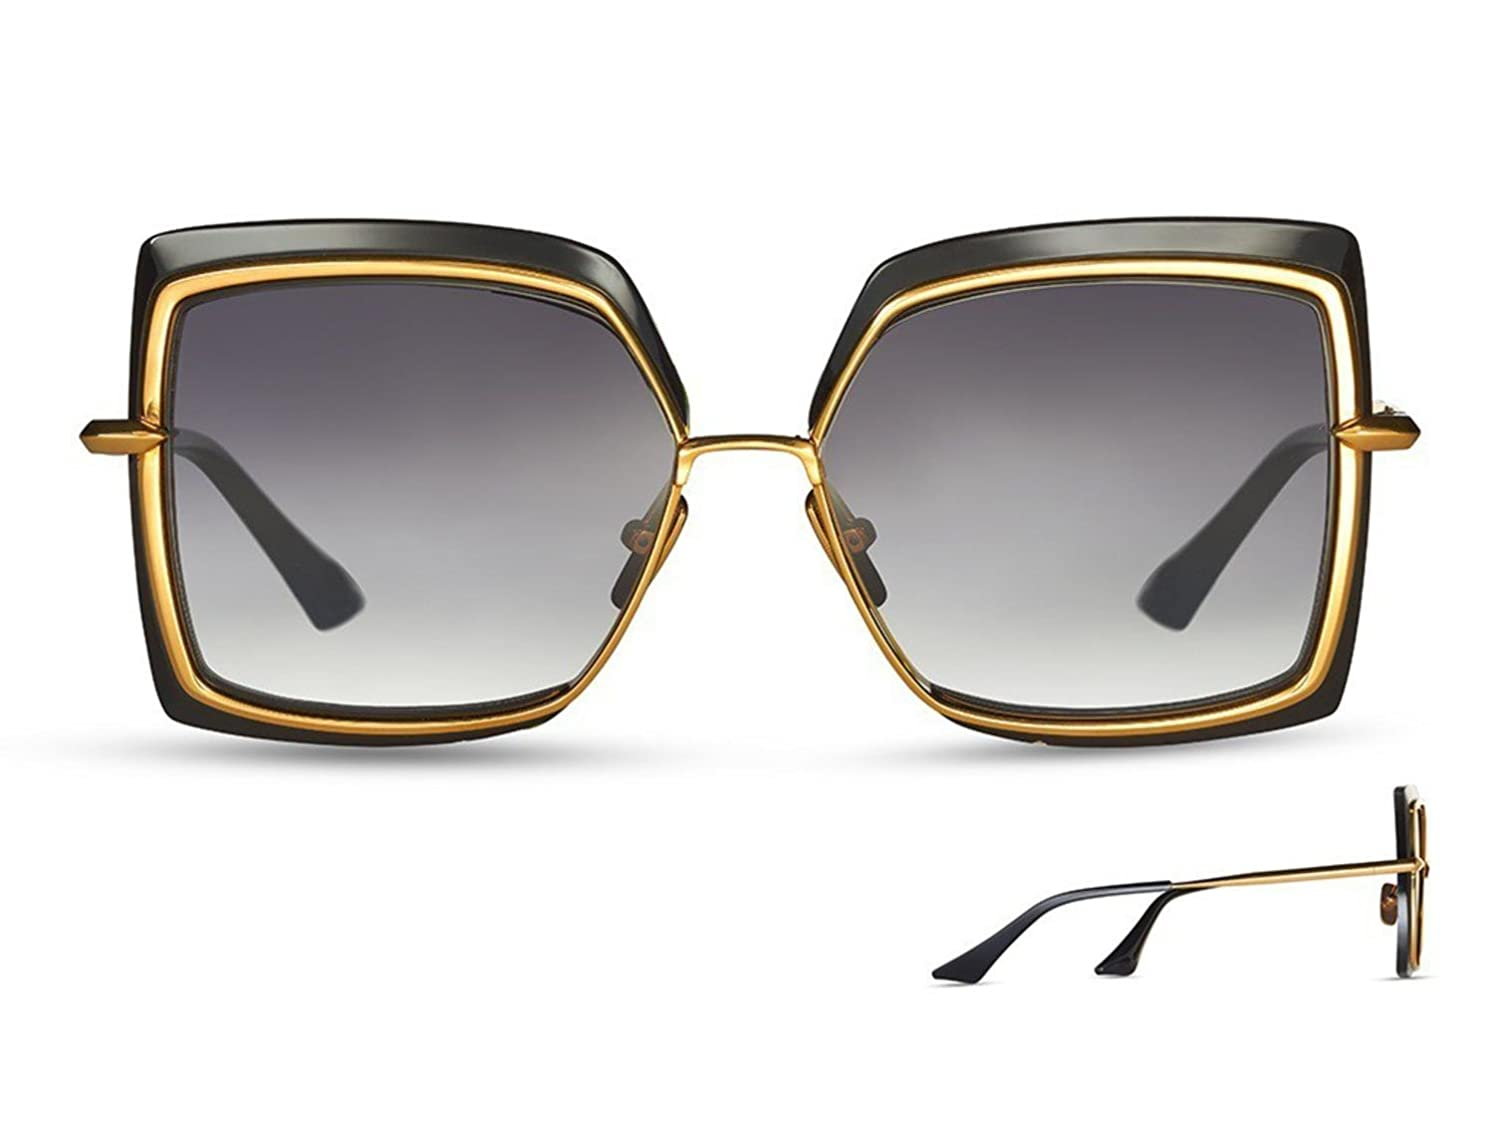 d93bc558cd9b2 Sunglasses Dita NARCISSUS DTS 503 01 Black-Yellow Gold w  Dark Grey to  Clear-AR at Amazon Men s Clothing store